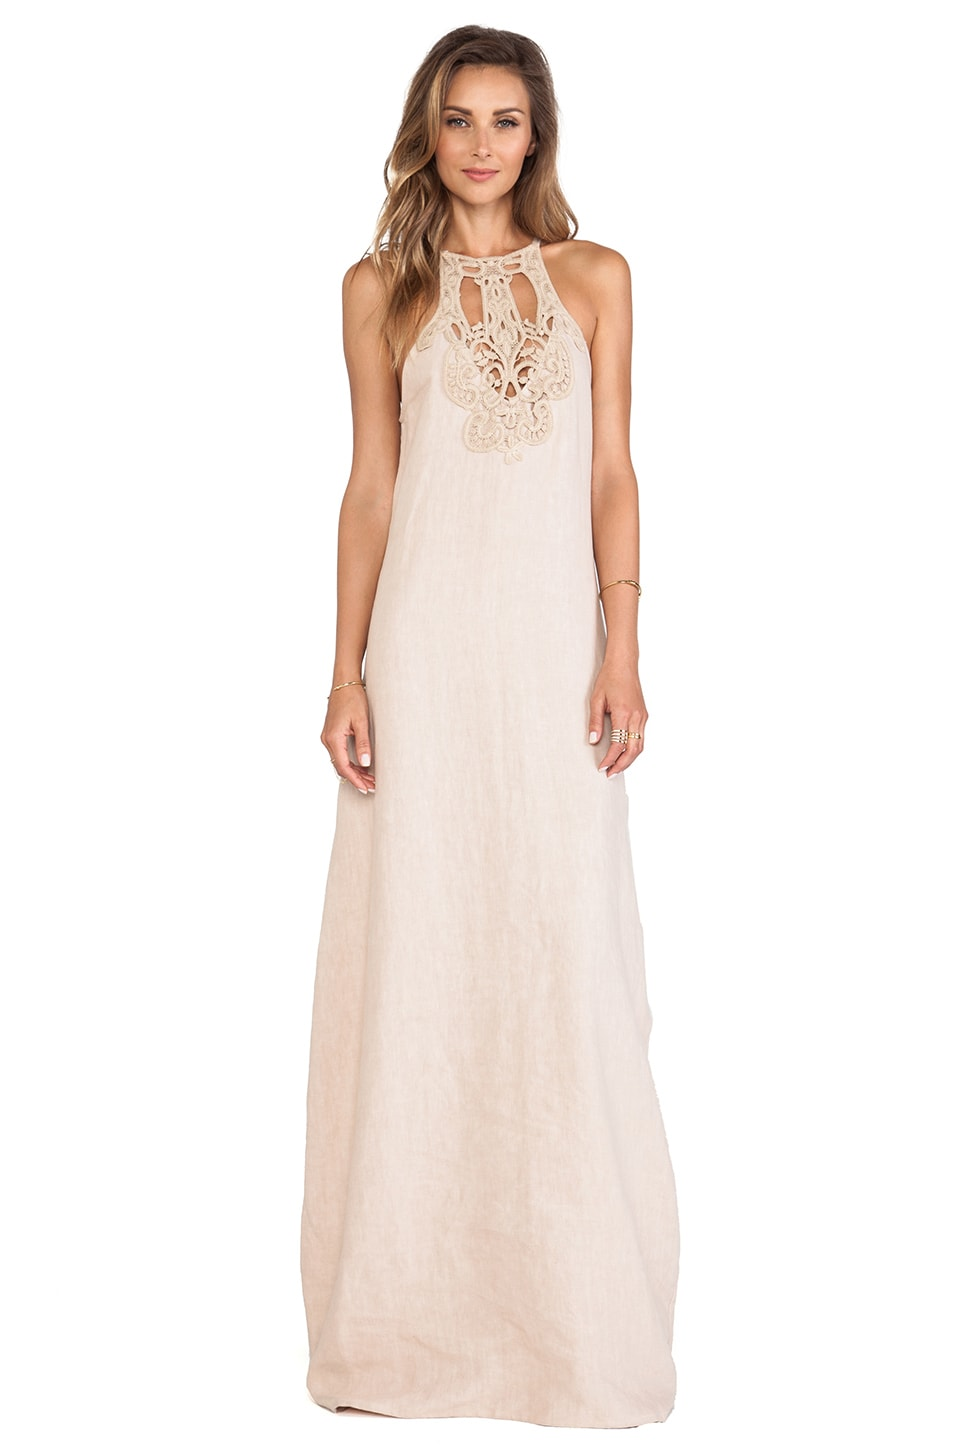 Lisa Maree A Night Alone Linen Dress in Taupe